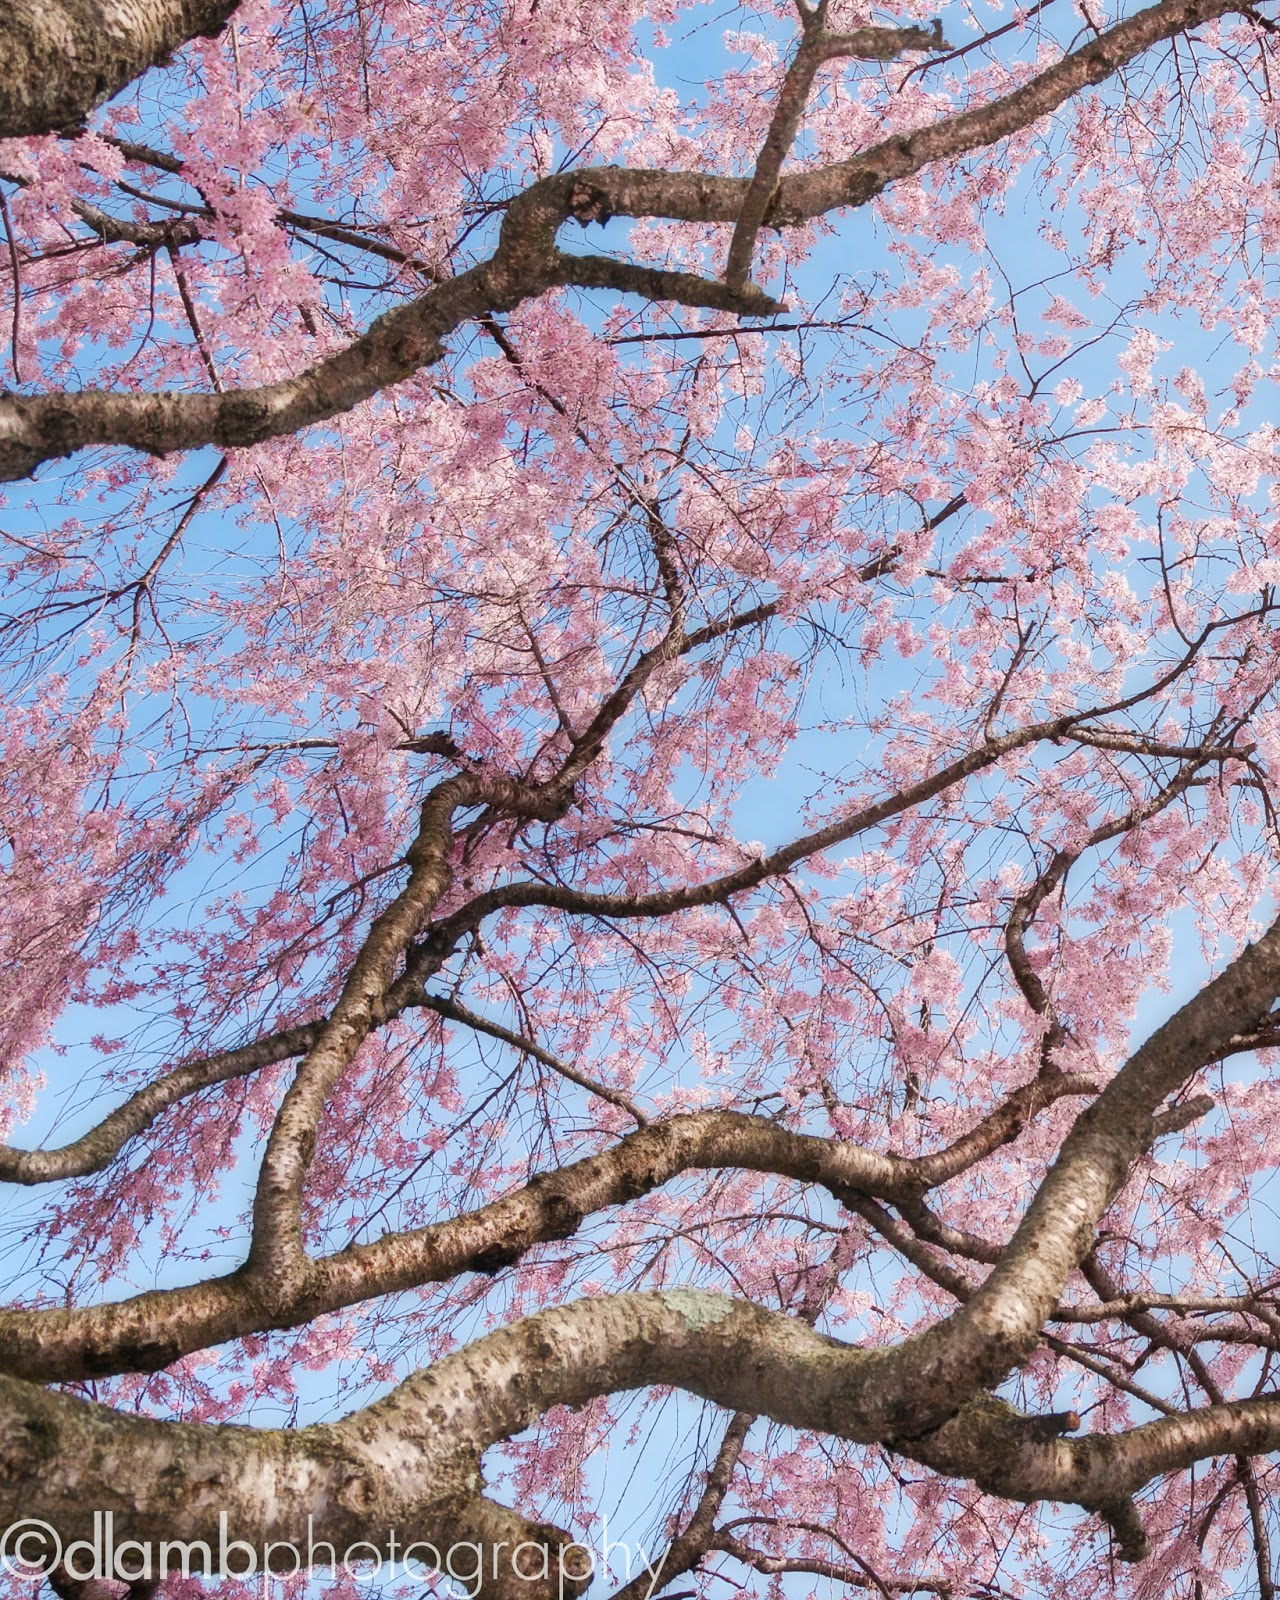 http://david-lamb.artistwebsites.com/featured/cherry-blossom-sky-david-lamb.html